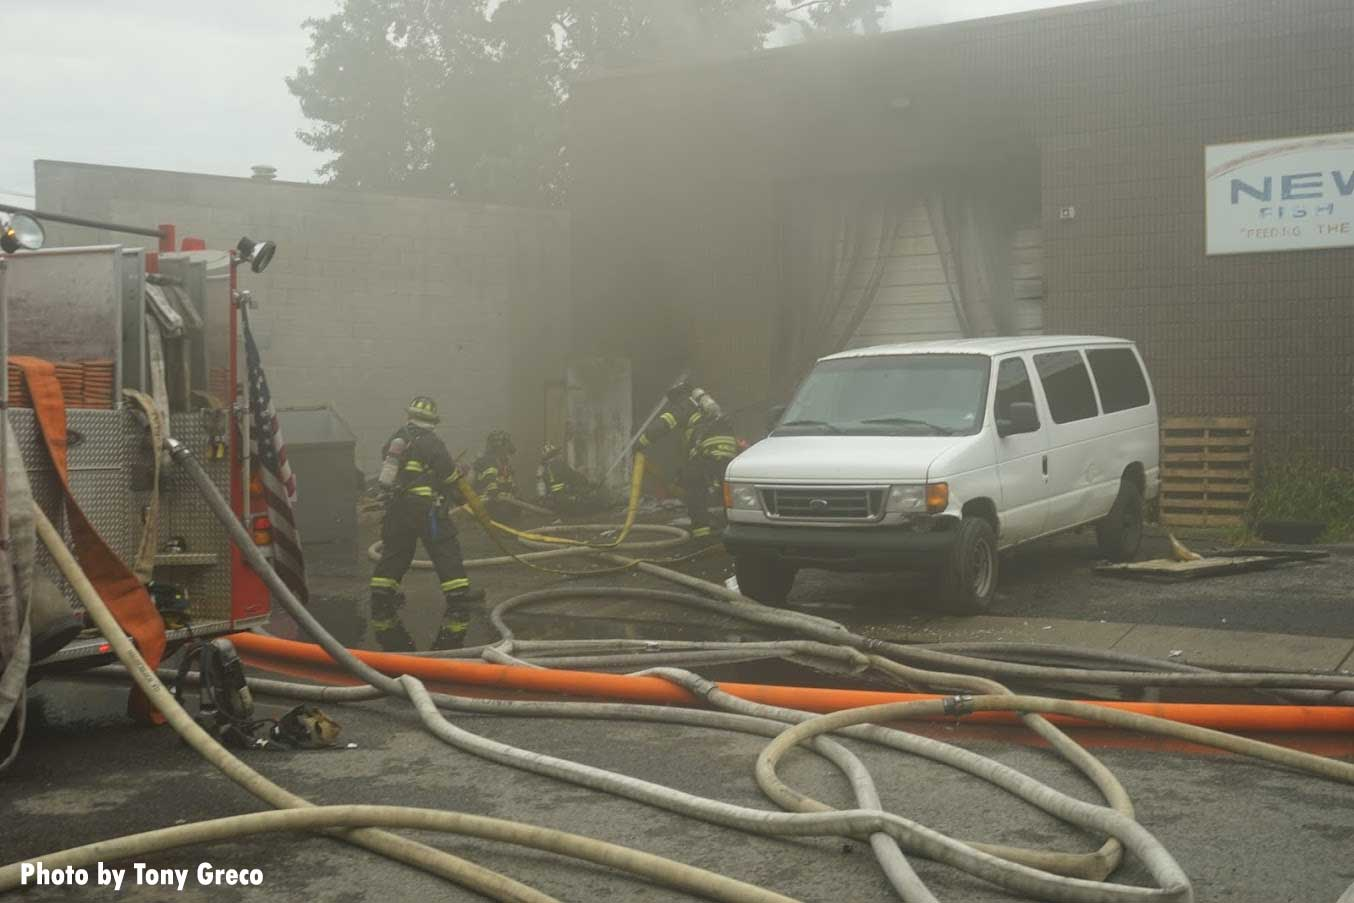 Firefighters maneuvering into fire building amid hoselines